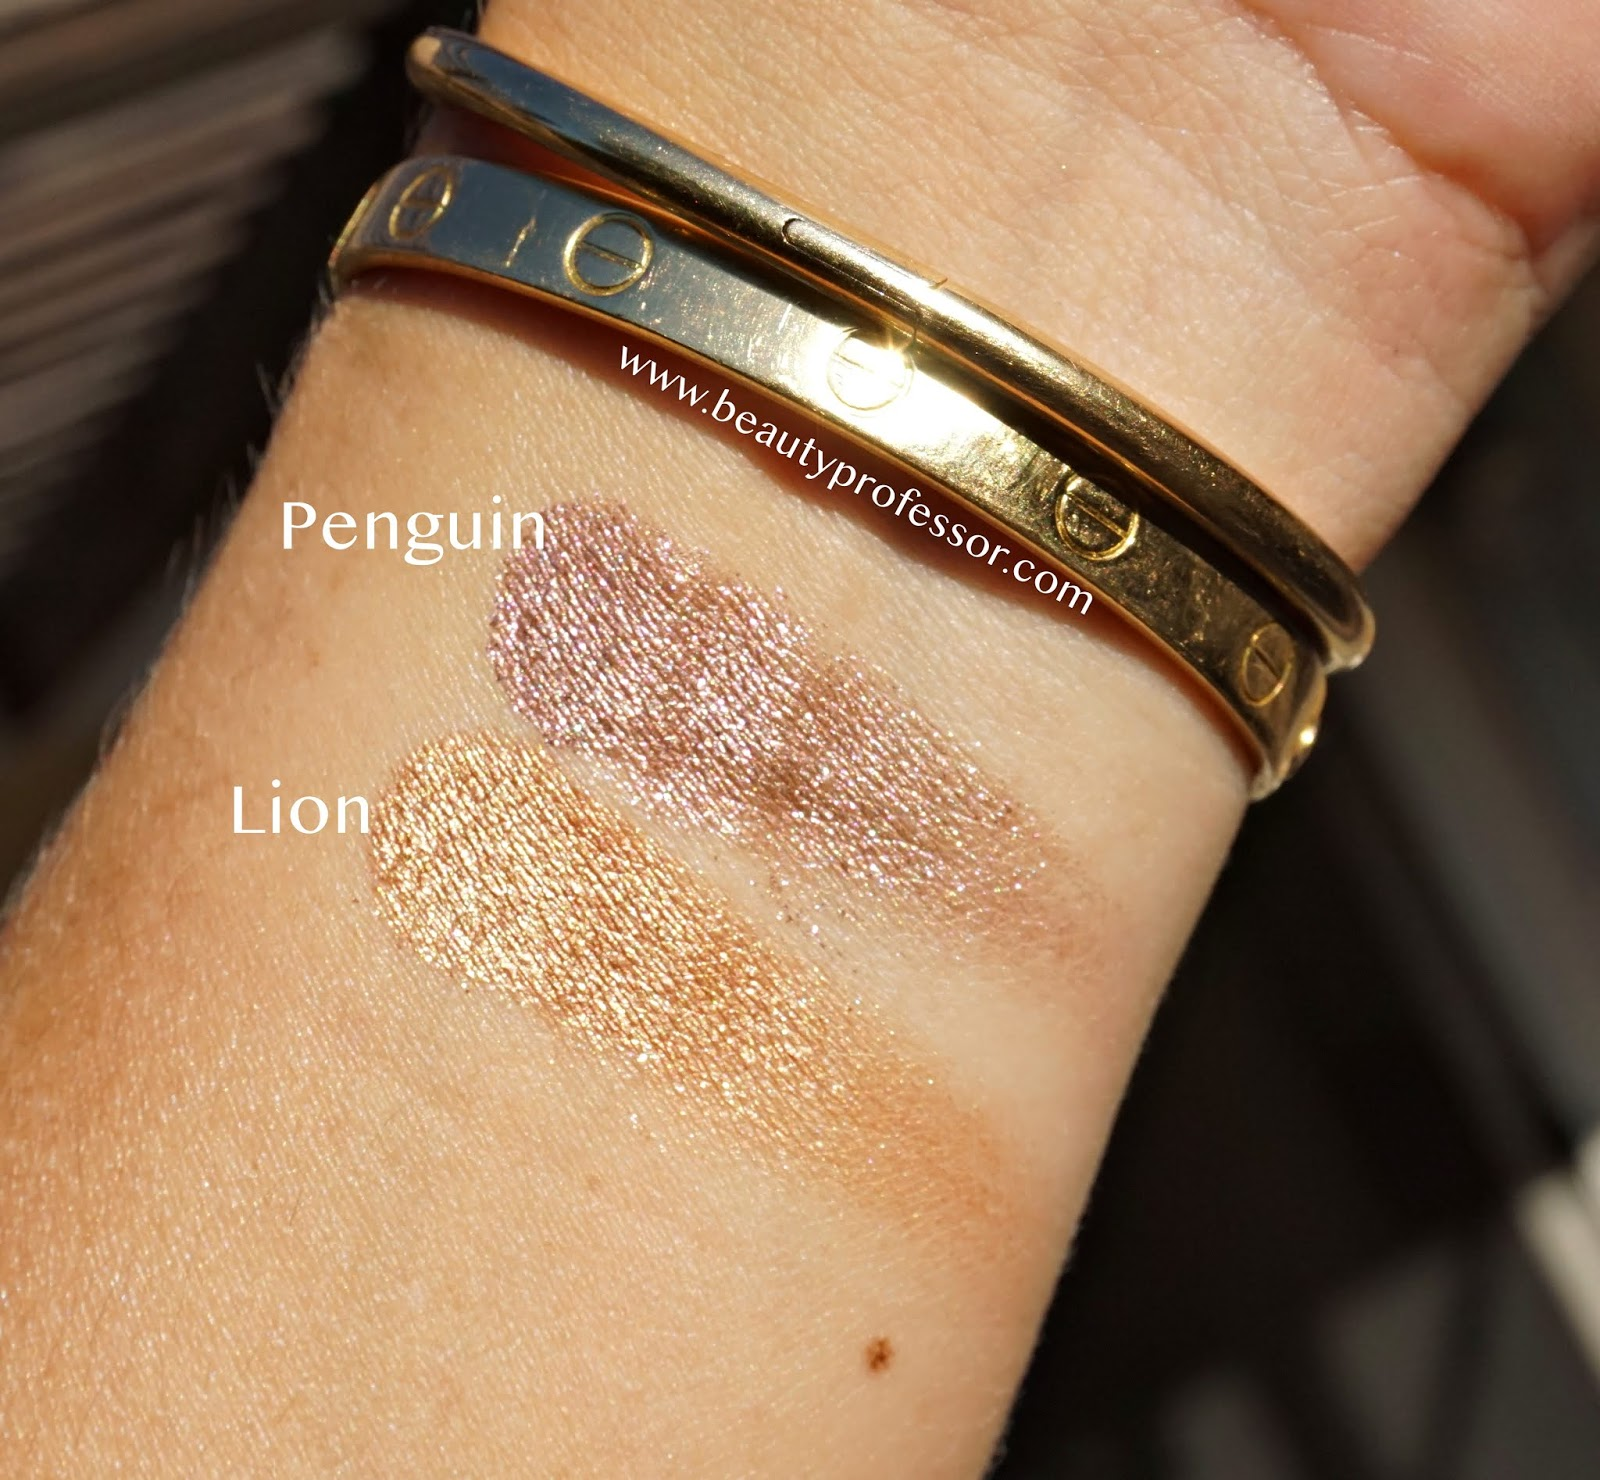 Chantecaille Luminescent Eye Shade swatches